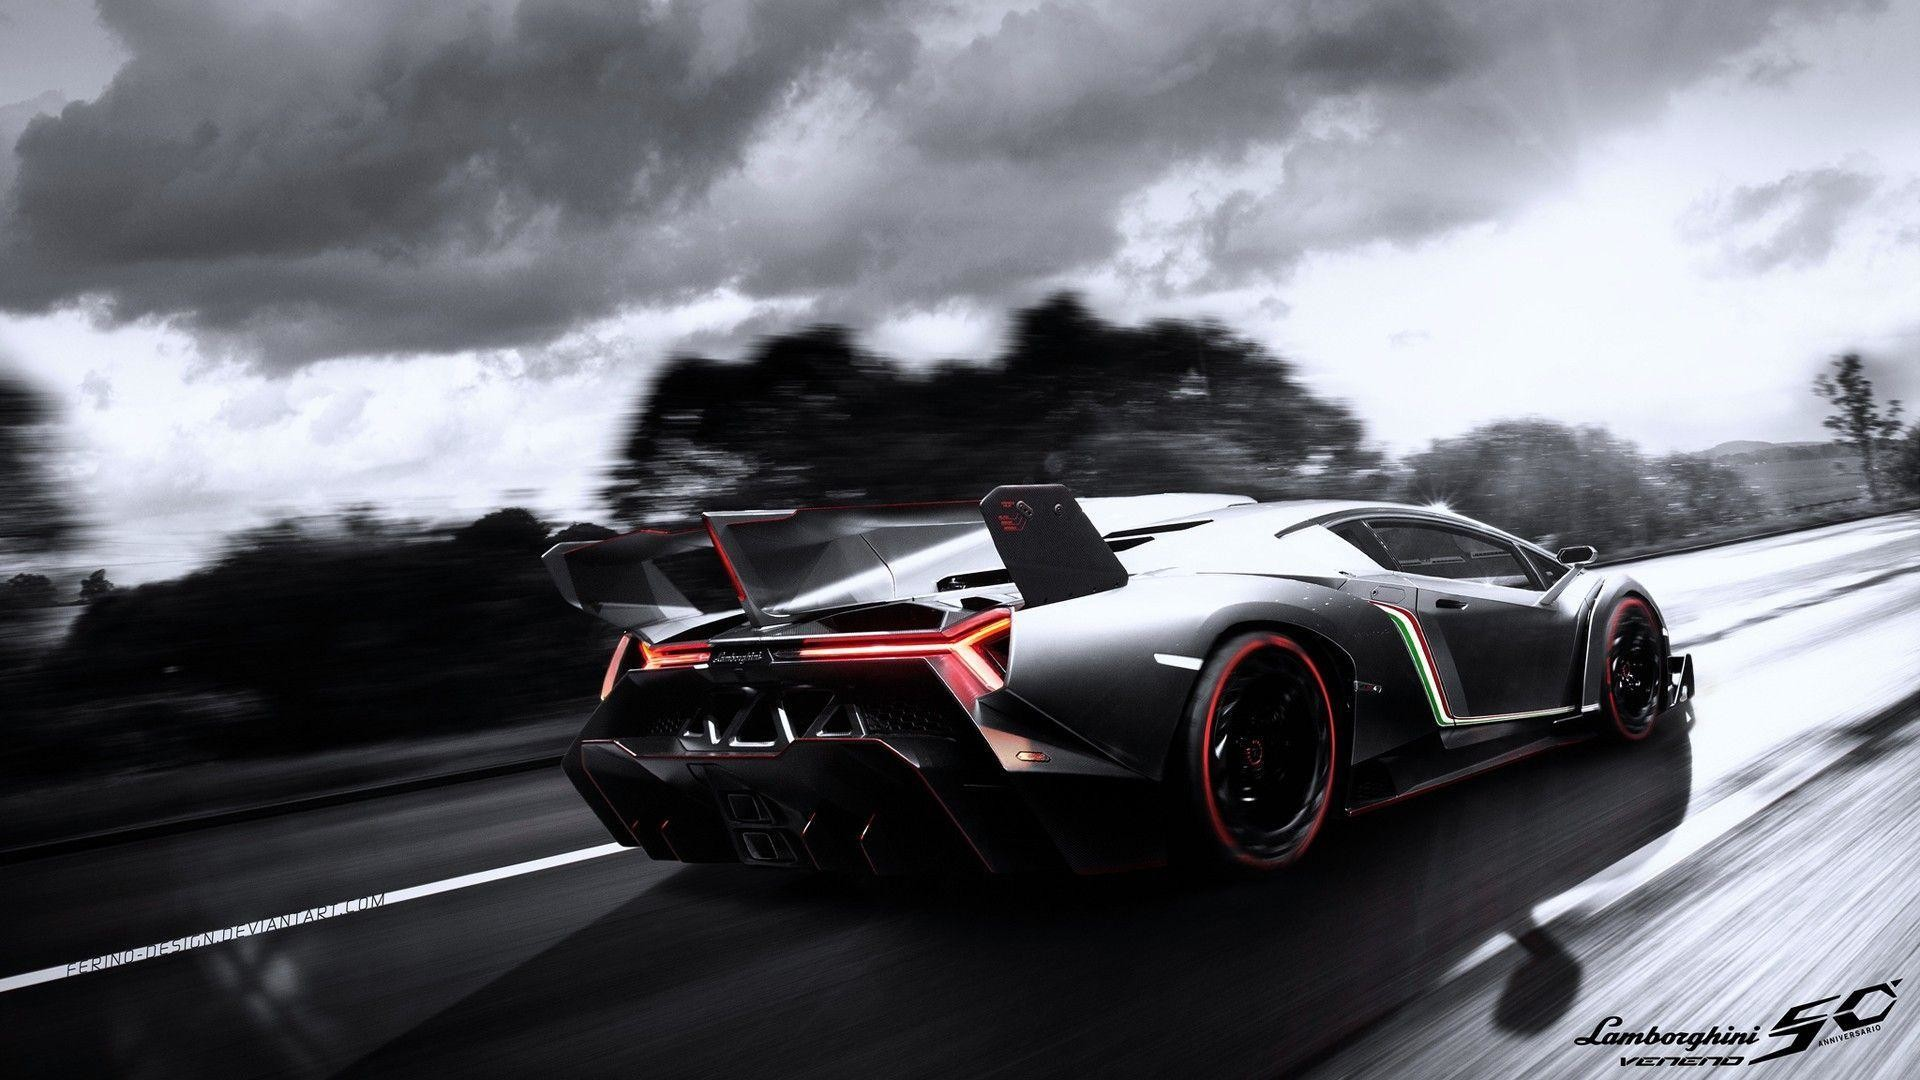 Download Wallpaper Mac Lamborghini - 499971-download-free-wallpaper-full-hd-1080p-lamborghini-new-1920x1080-for-macbook  Image_477454.jpg